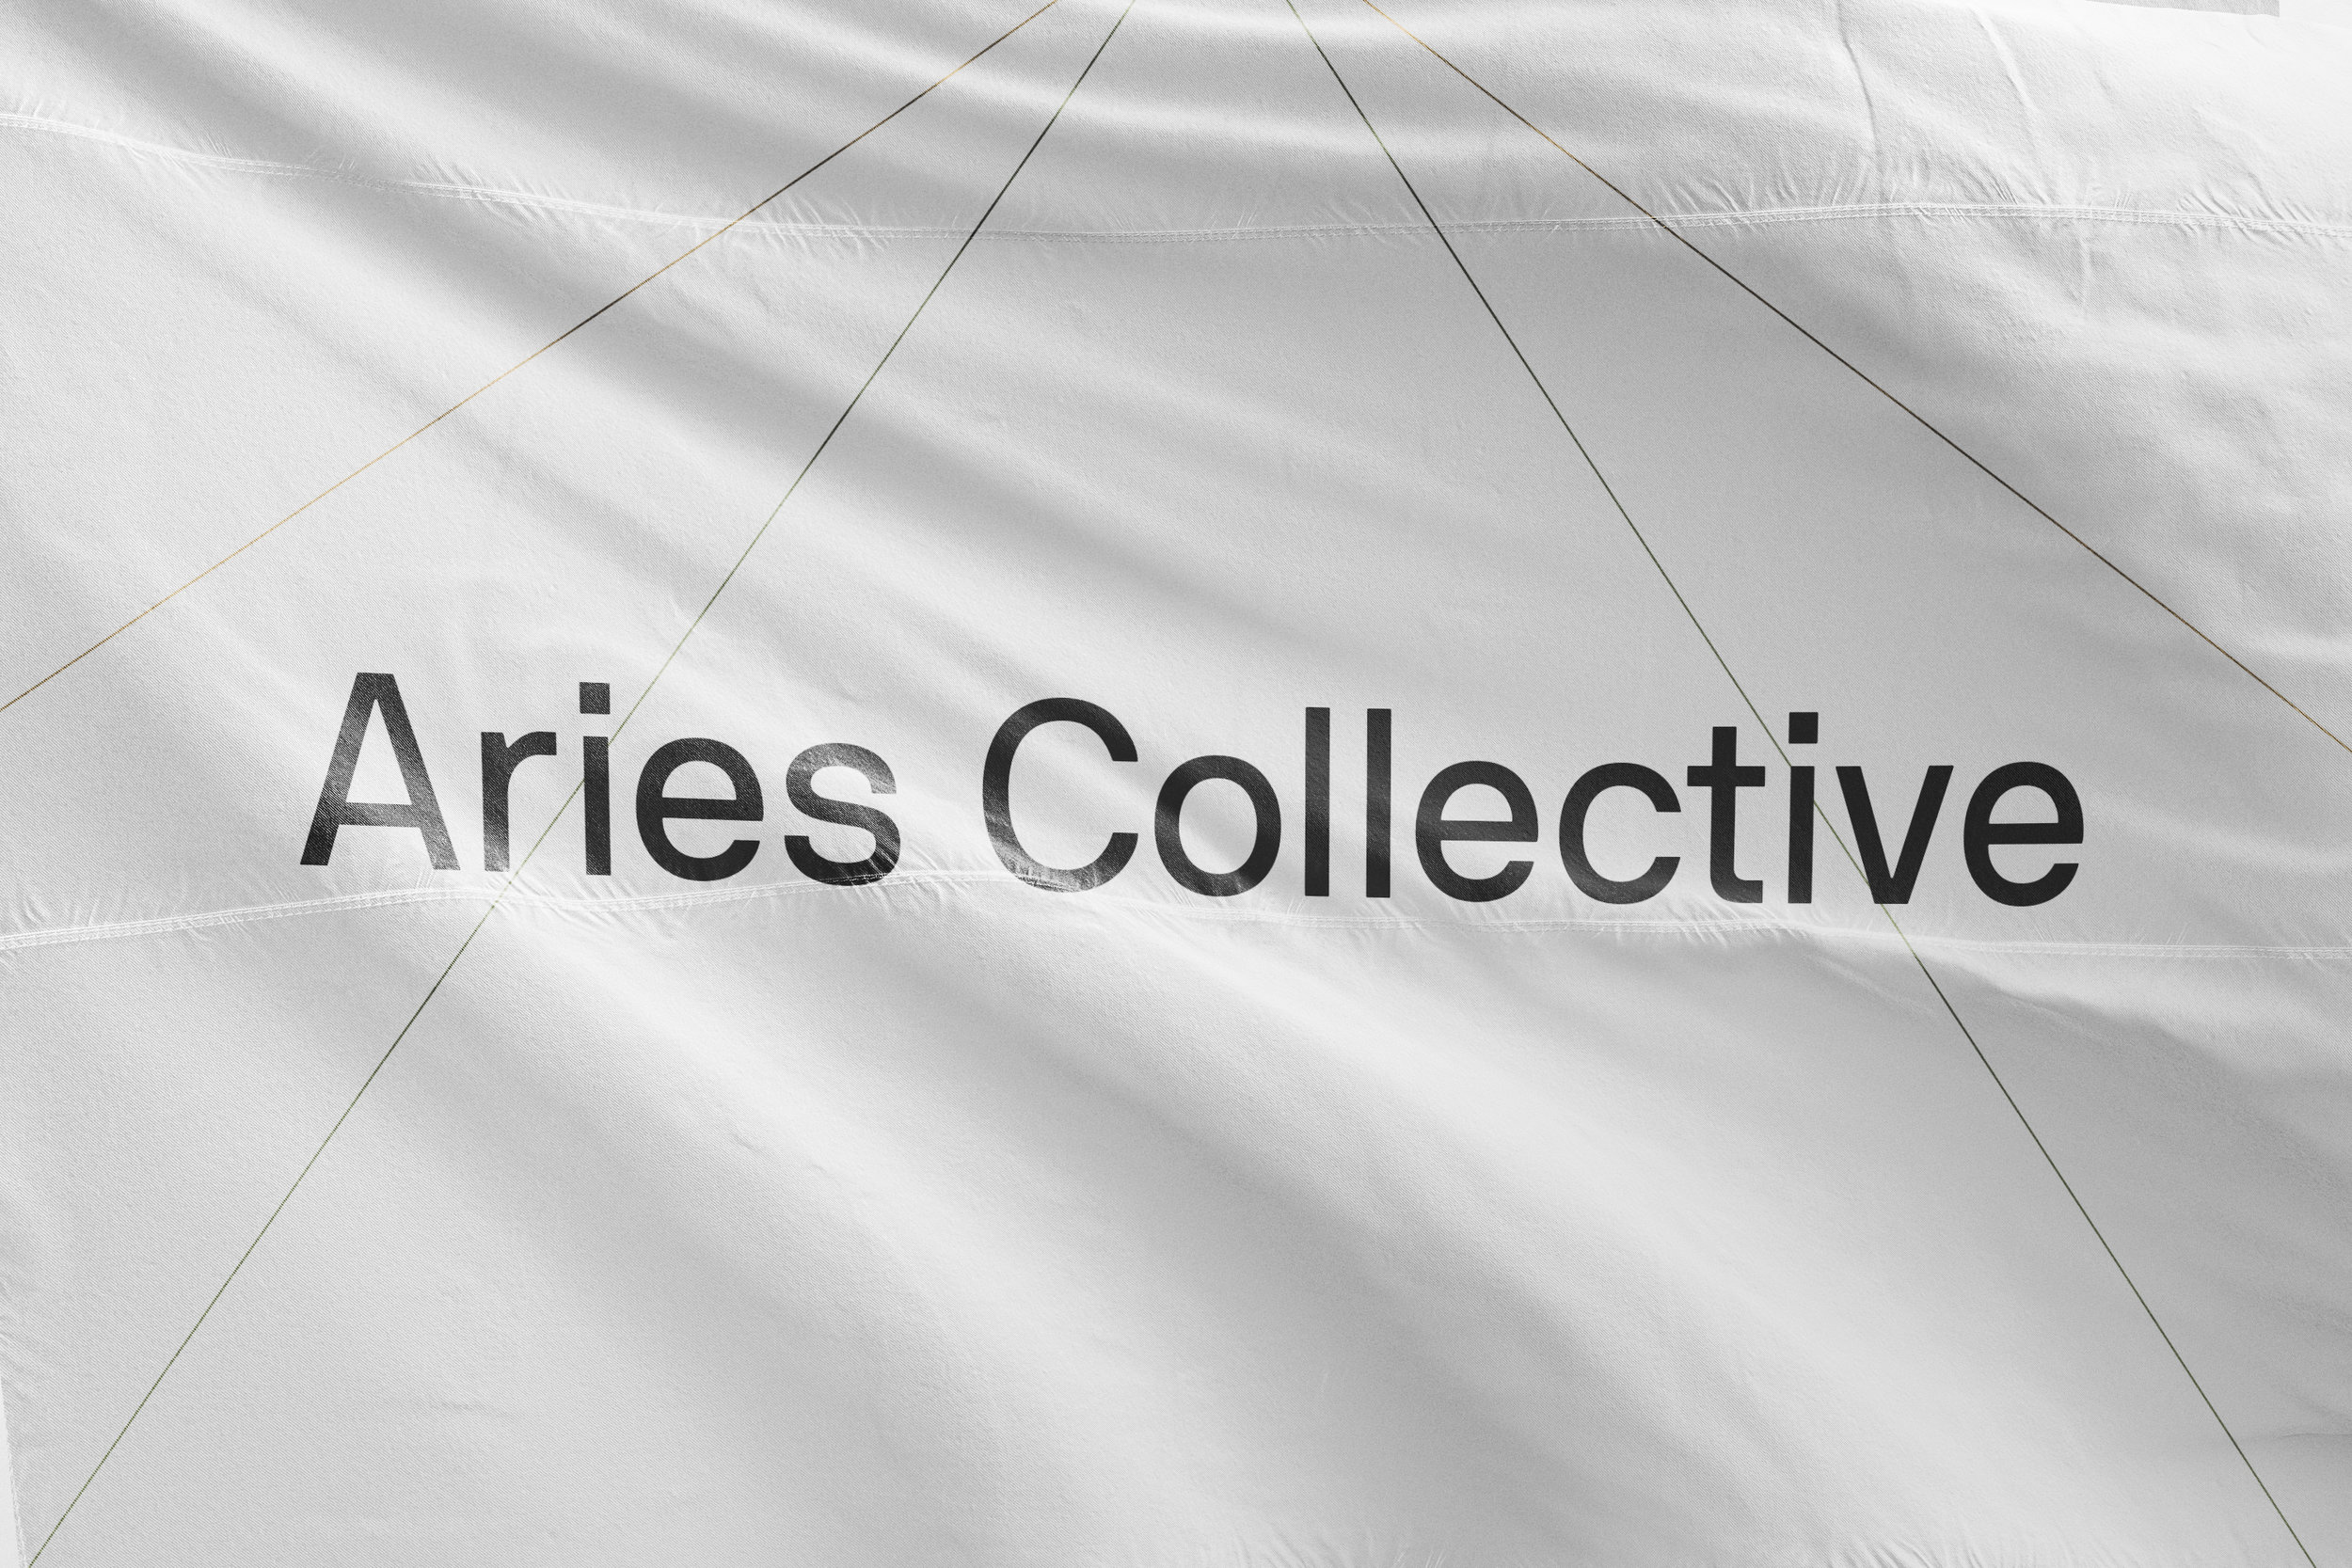 Aries_Collective_12.jpg